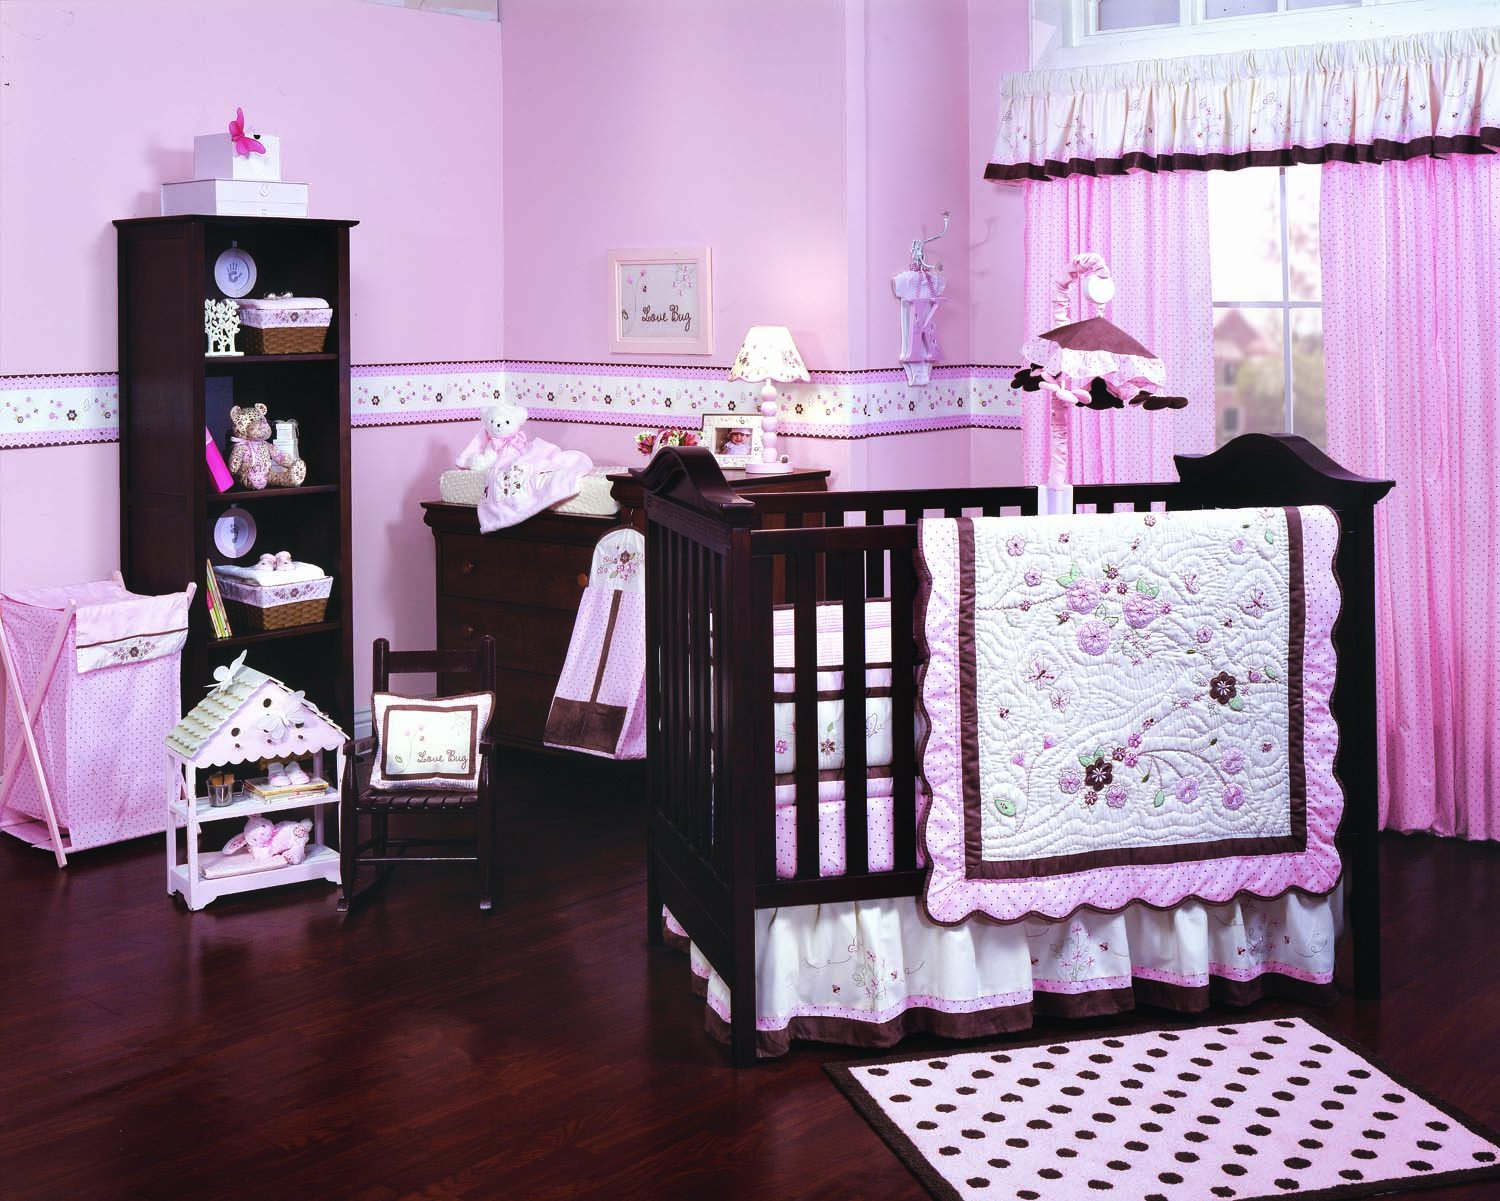 15 Cutest Baby Girl Crib Bedding Sets - it's BABY time!